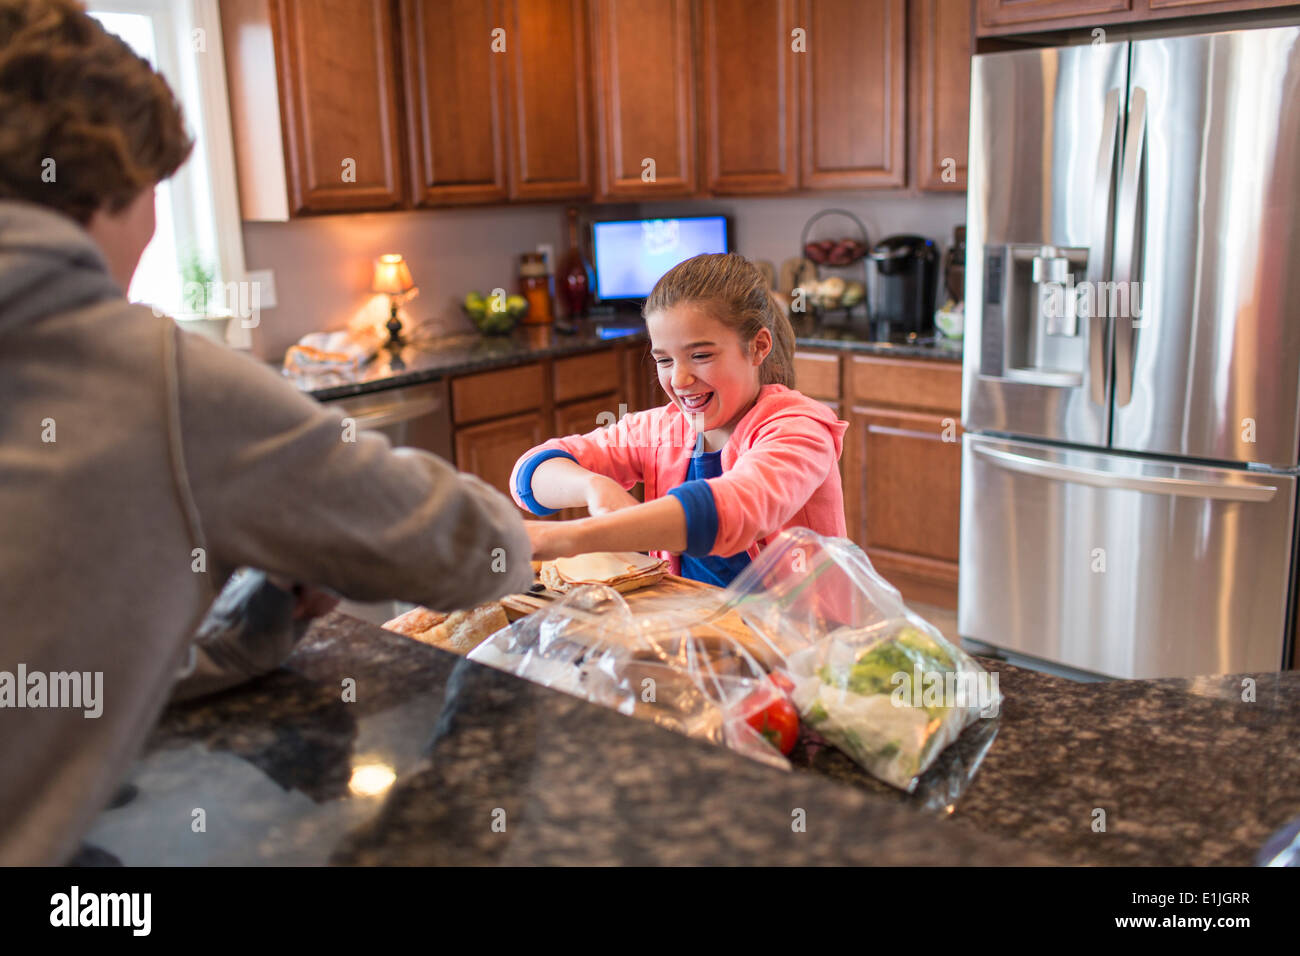 Brother and sister in kitchen preparing sandwich - Stock Image